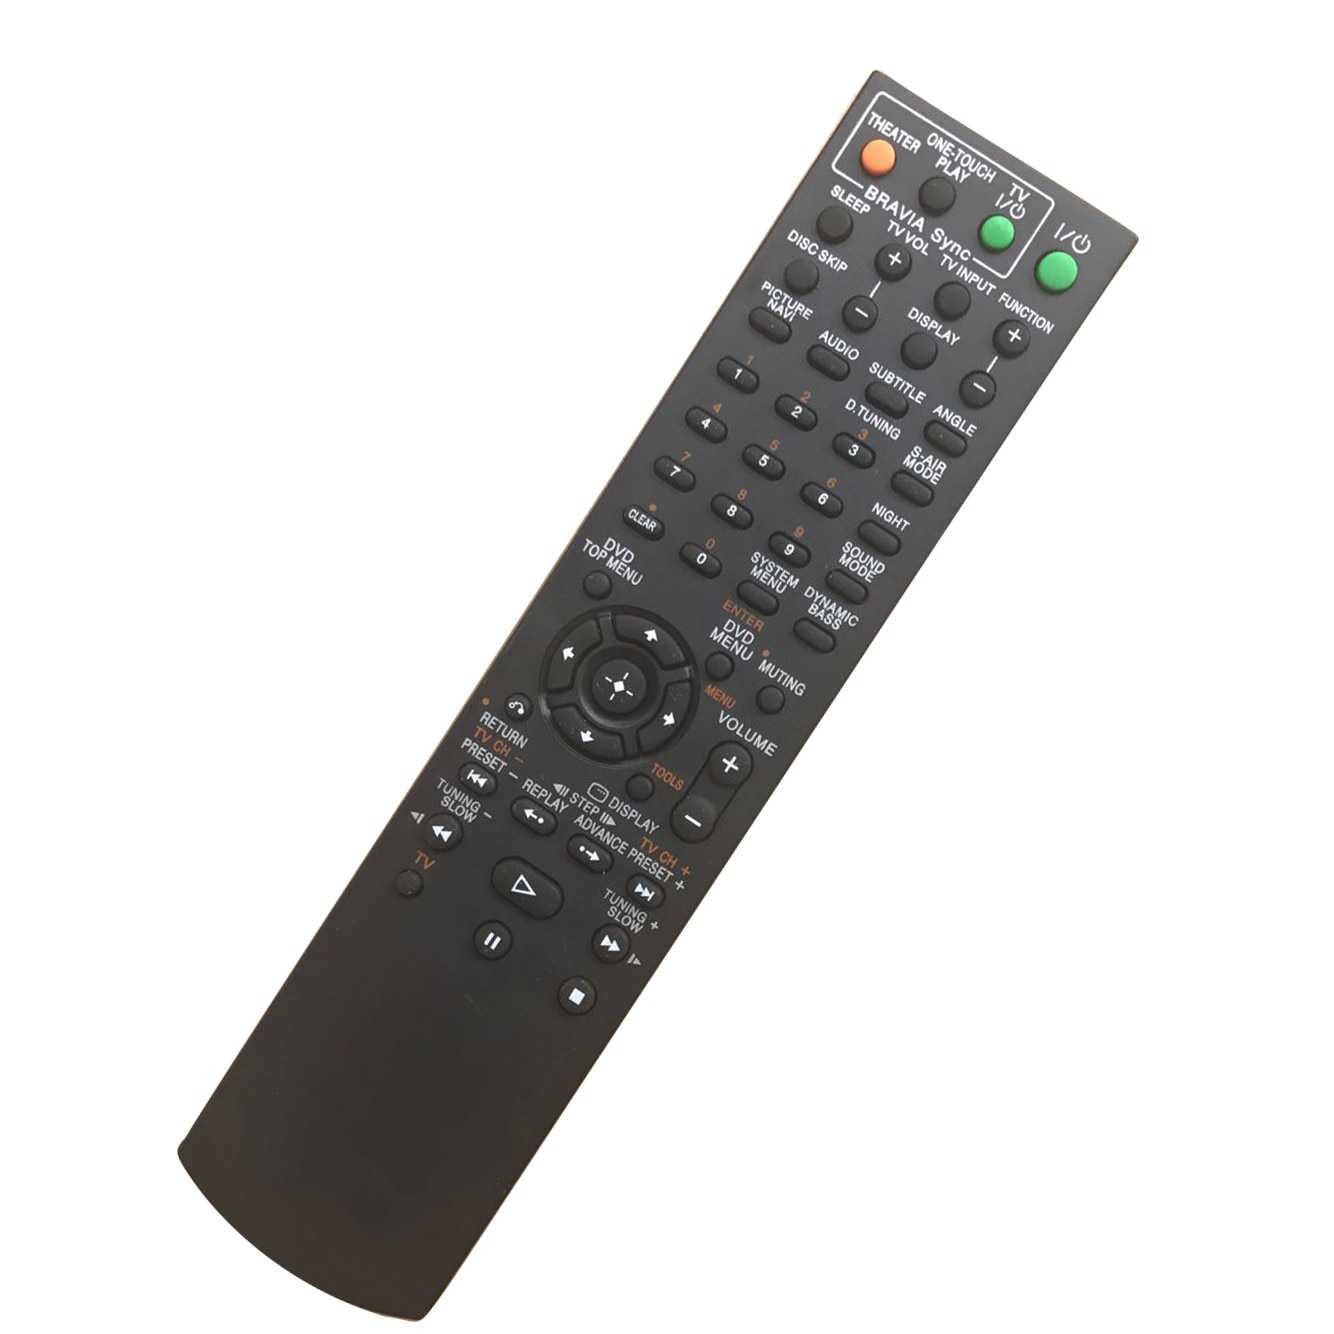 New Remote Control FOR Sony DVD Home Theater System DAV-DZ265K DAV-DZ266K DAV-DZ270K DAV-DZ290K DAV-DZ570K DAV-DZ590K